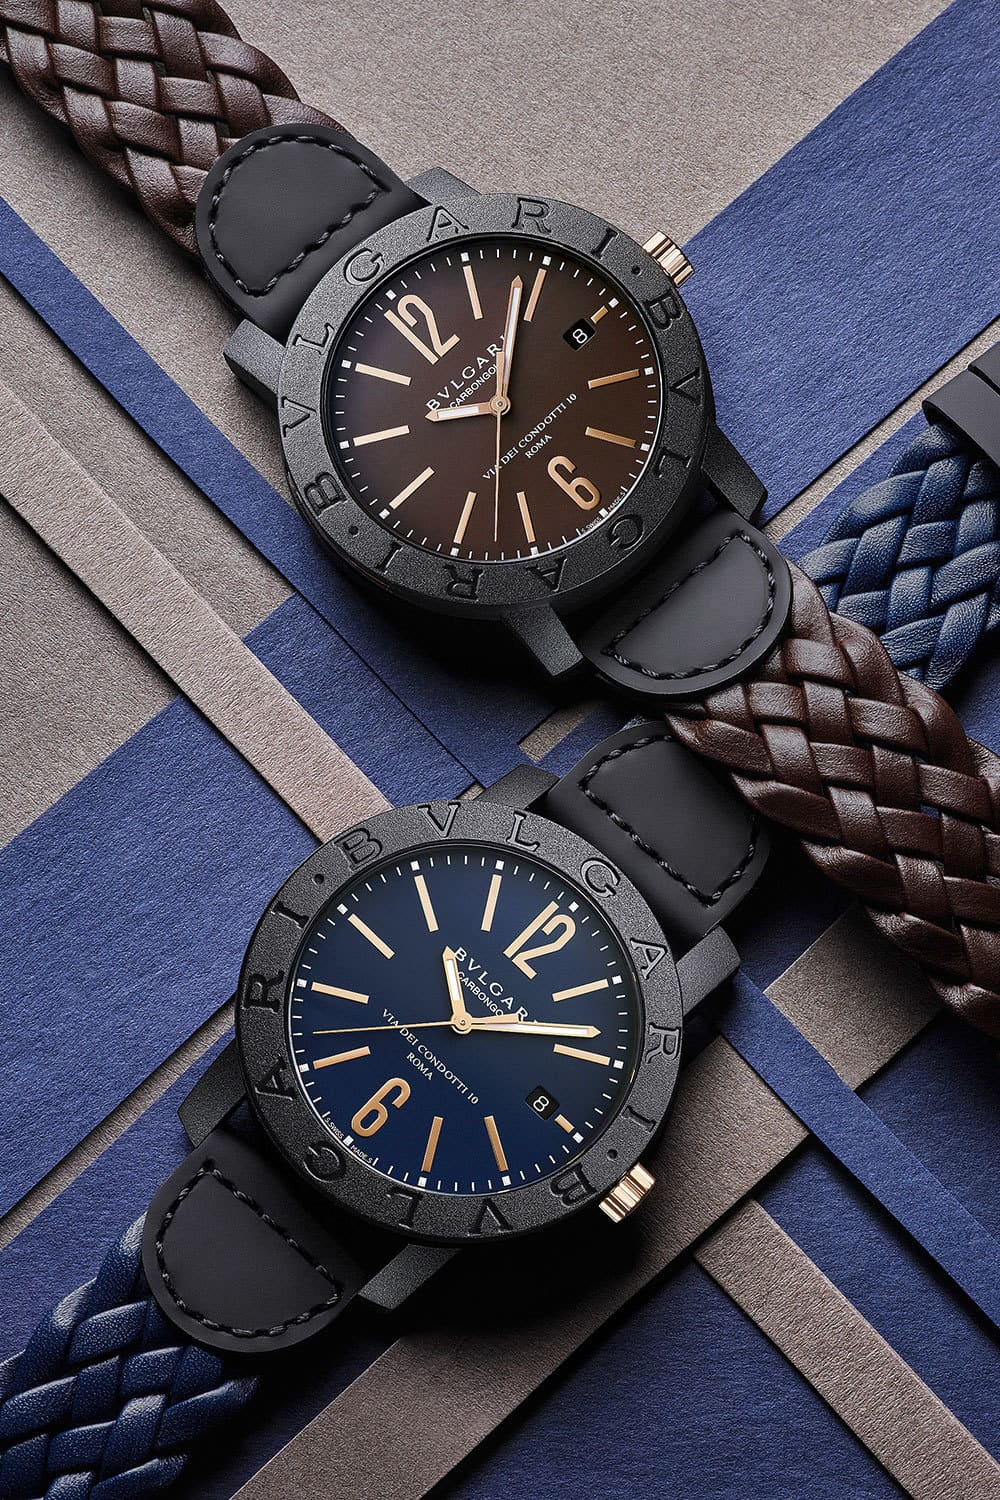 Bvlgari's New Carbon Gold Timepiece is Beyond Stunning